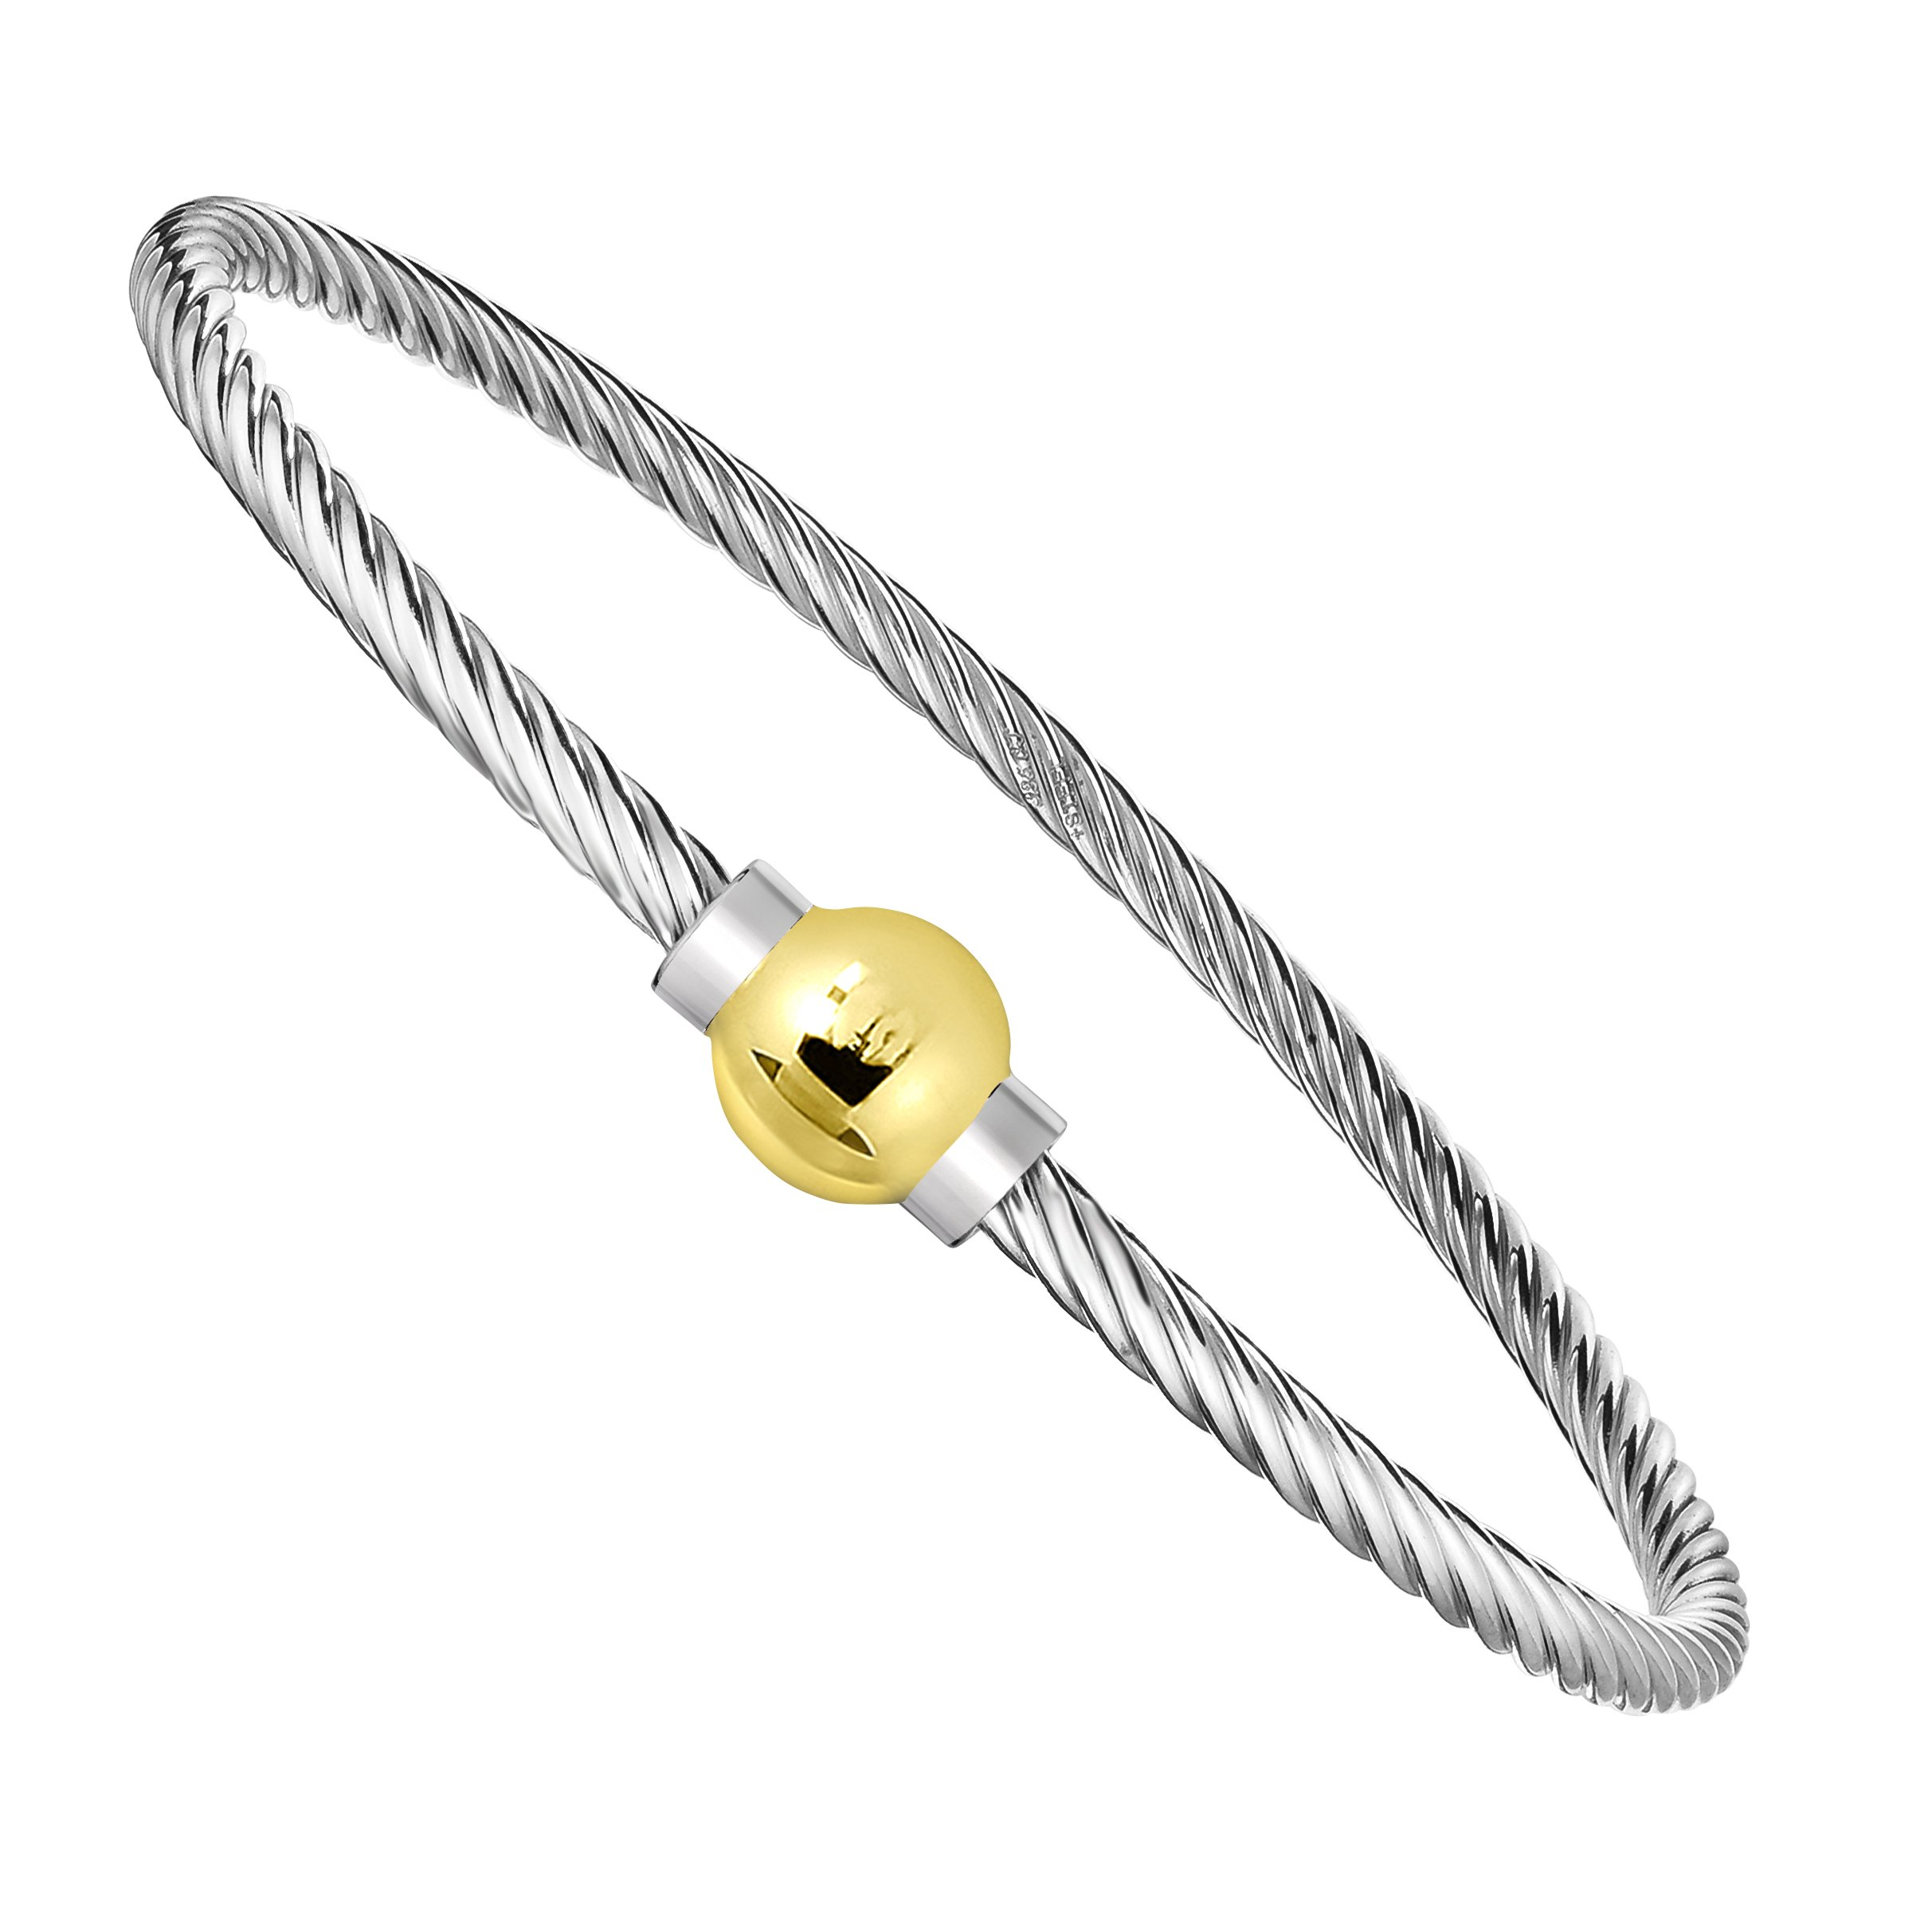 Ocean side bracelet 925 Sterling Silver And 14K solid Gold Ball Screw Twisted Bangle Bracelet. (8)